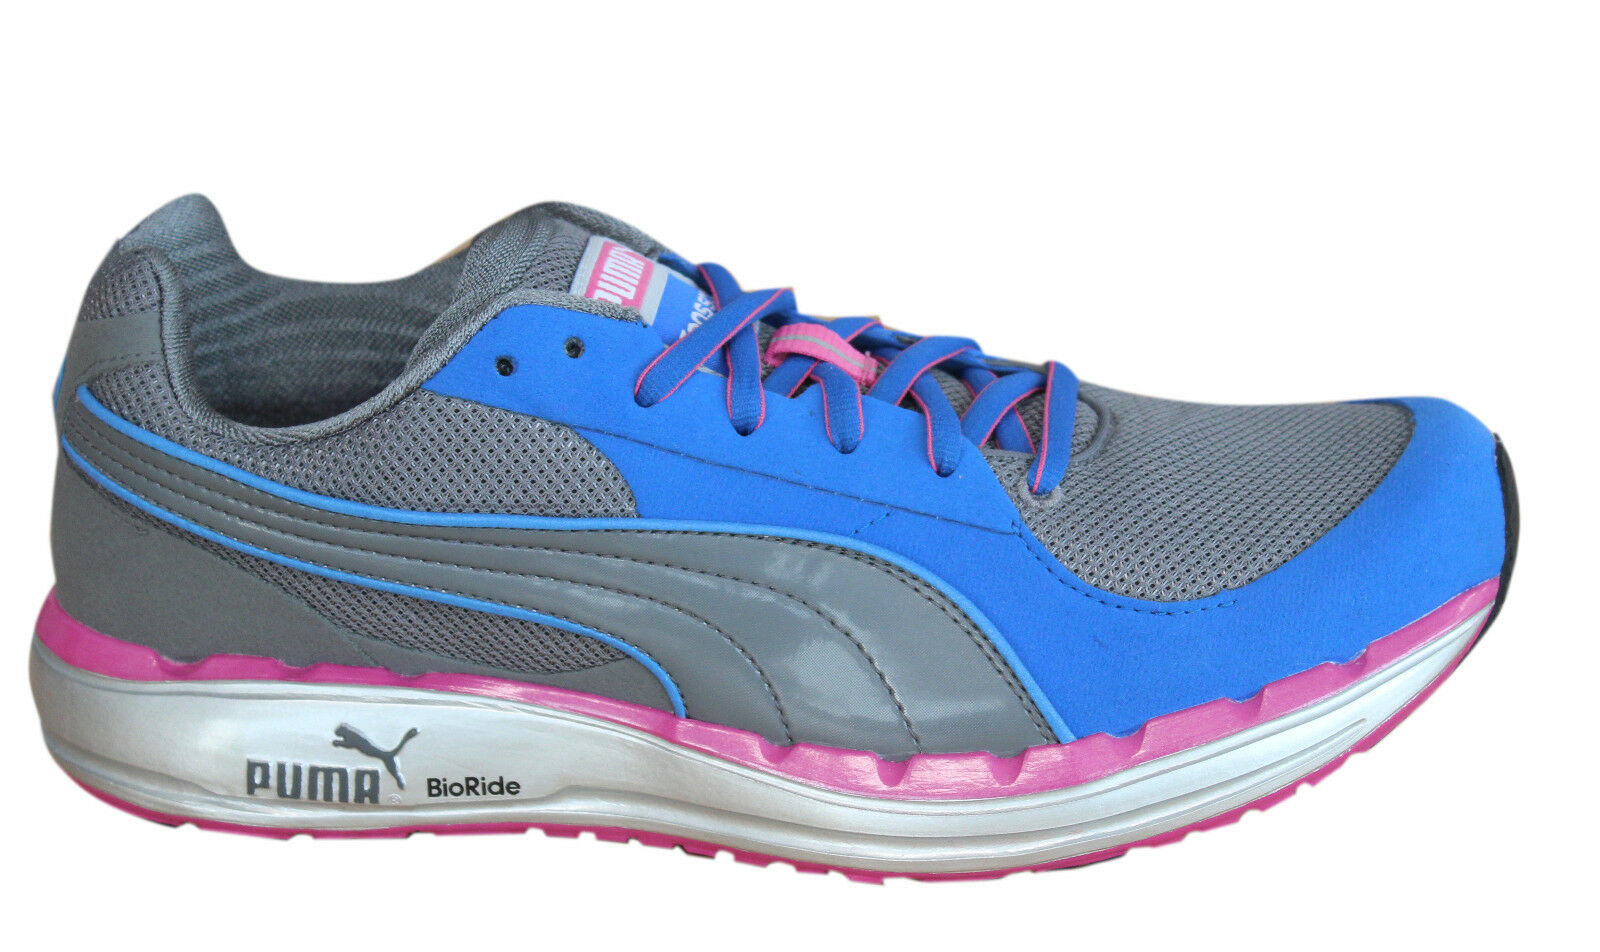 Puma Faas 500 Womens Trainers Lace Up Running shoes Pink Mesh 185161 15 D23